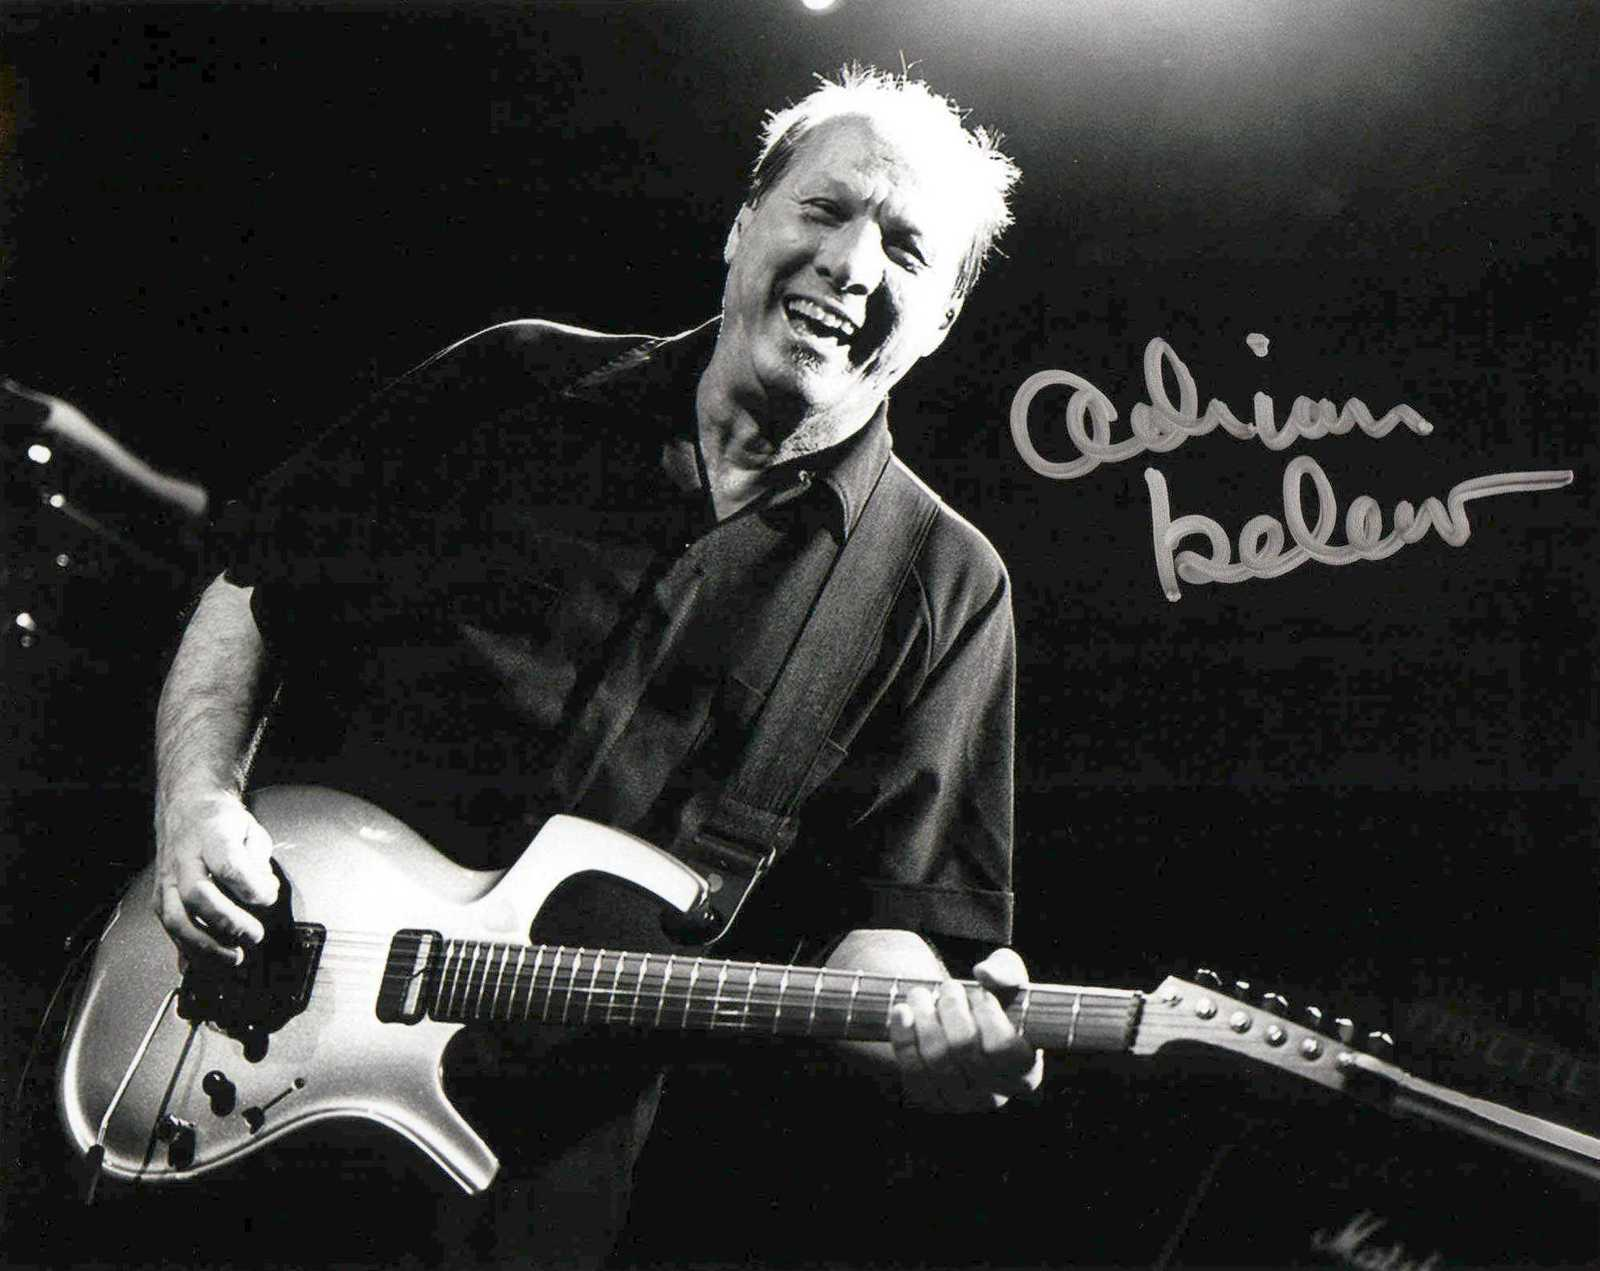 Primary image for Adrian Belew Signed Autographed Glossy 8x10 Photo